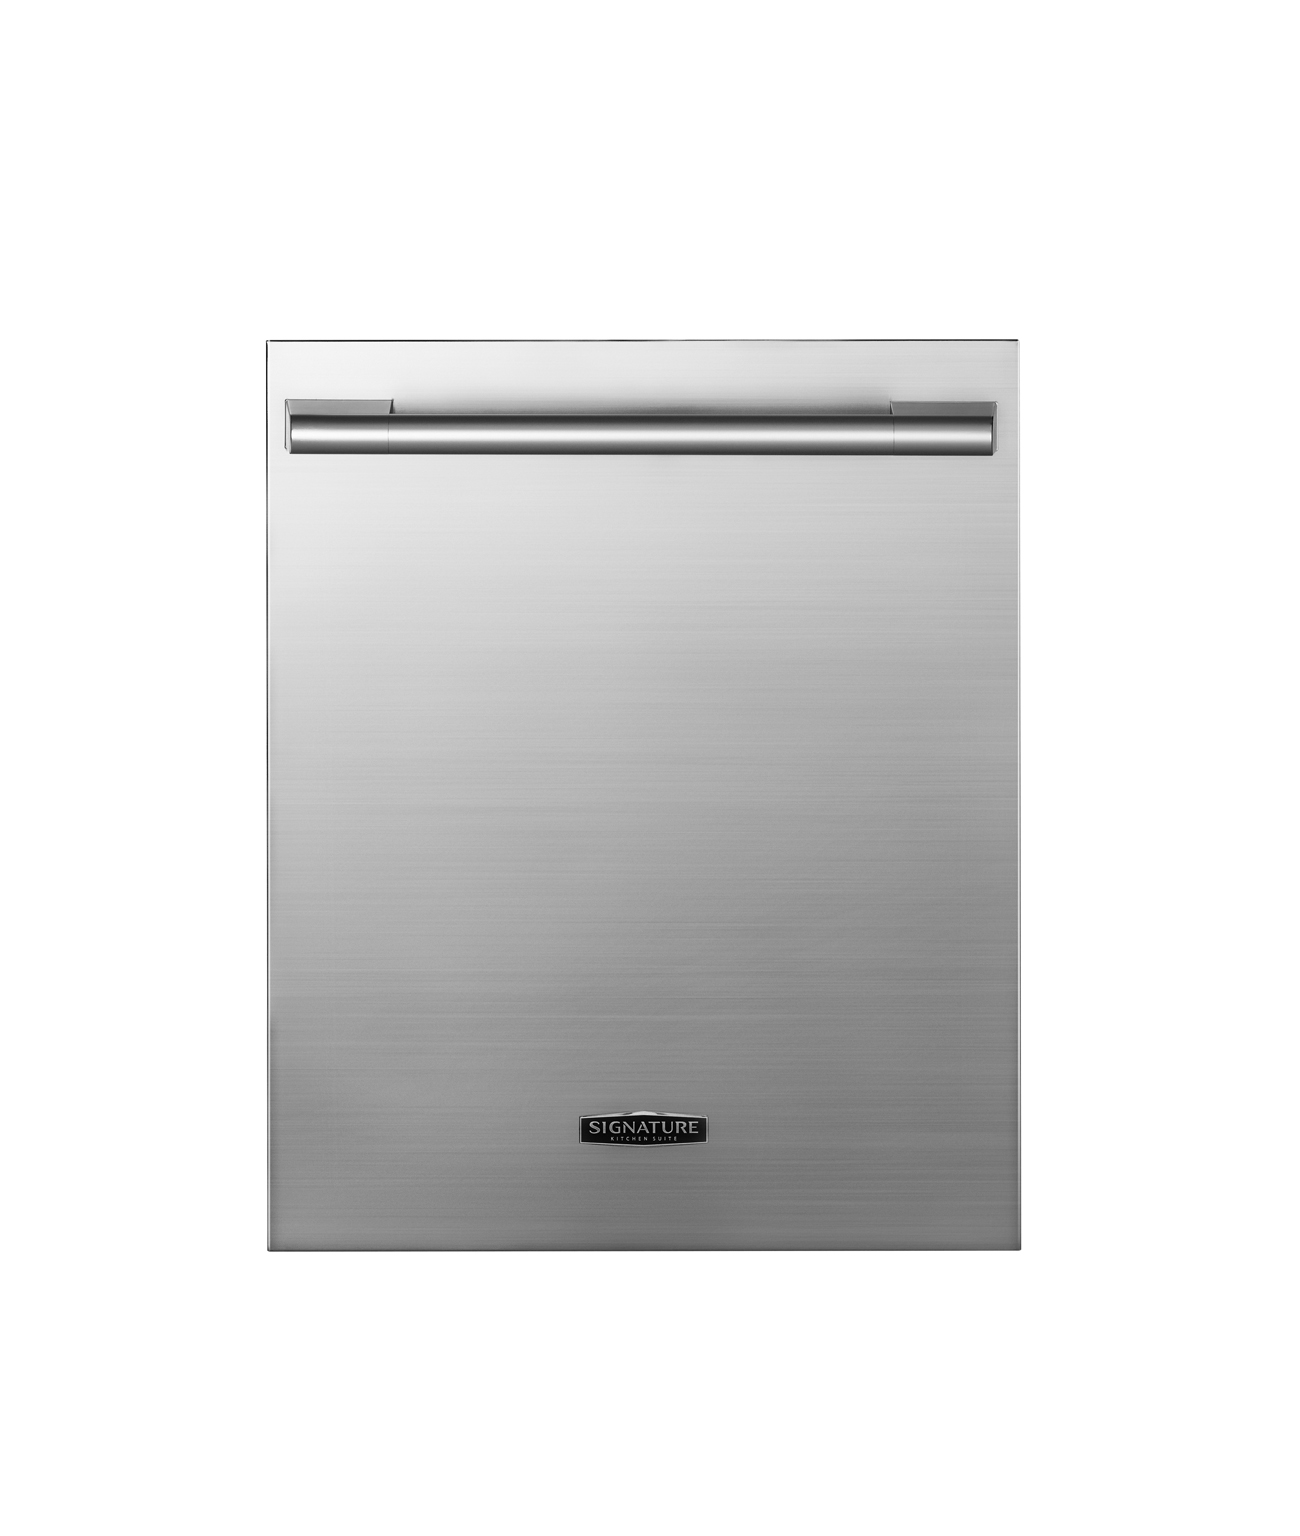 Dishwasher by Signature Kitchen Suites